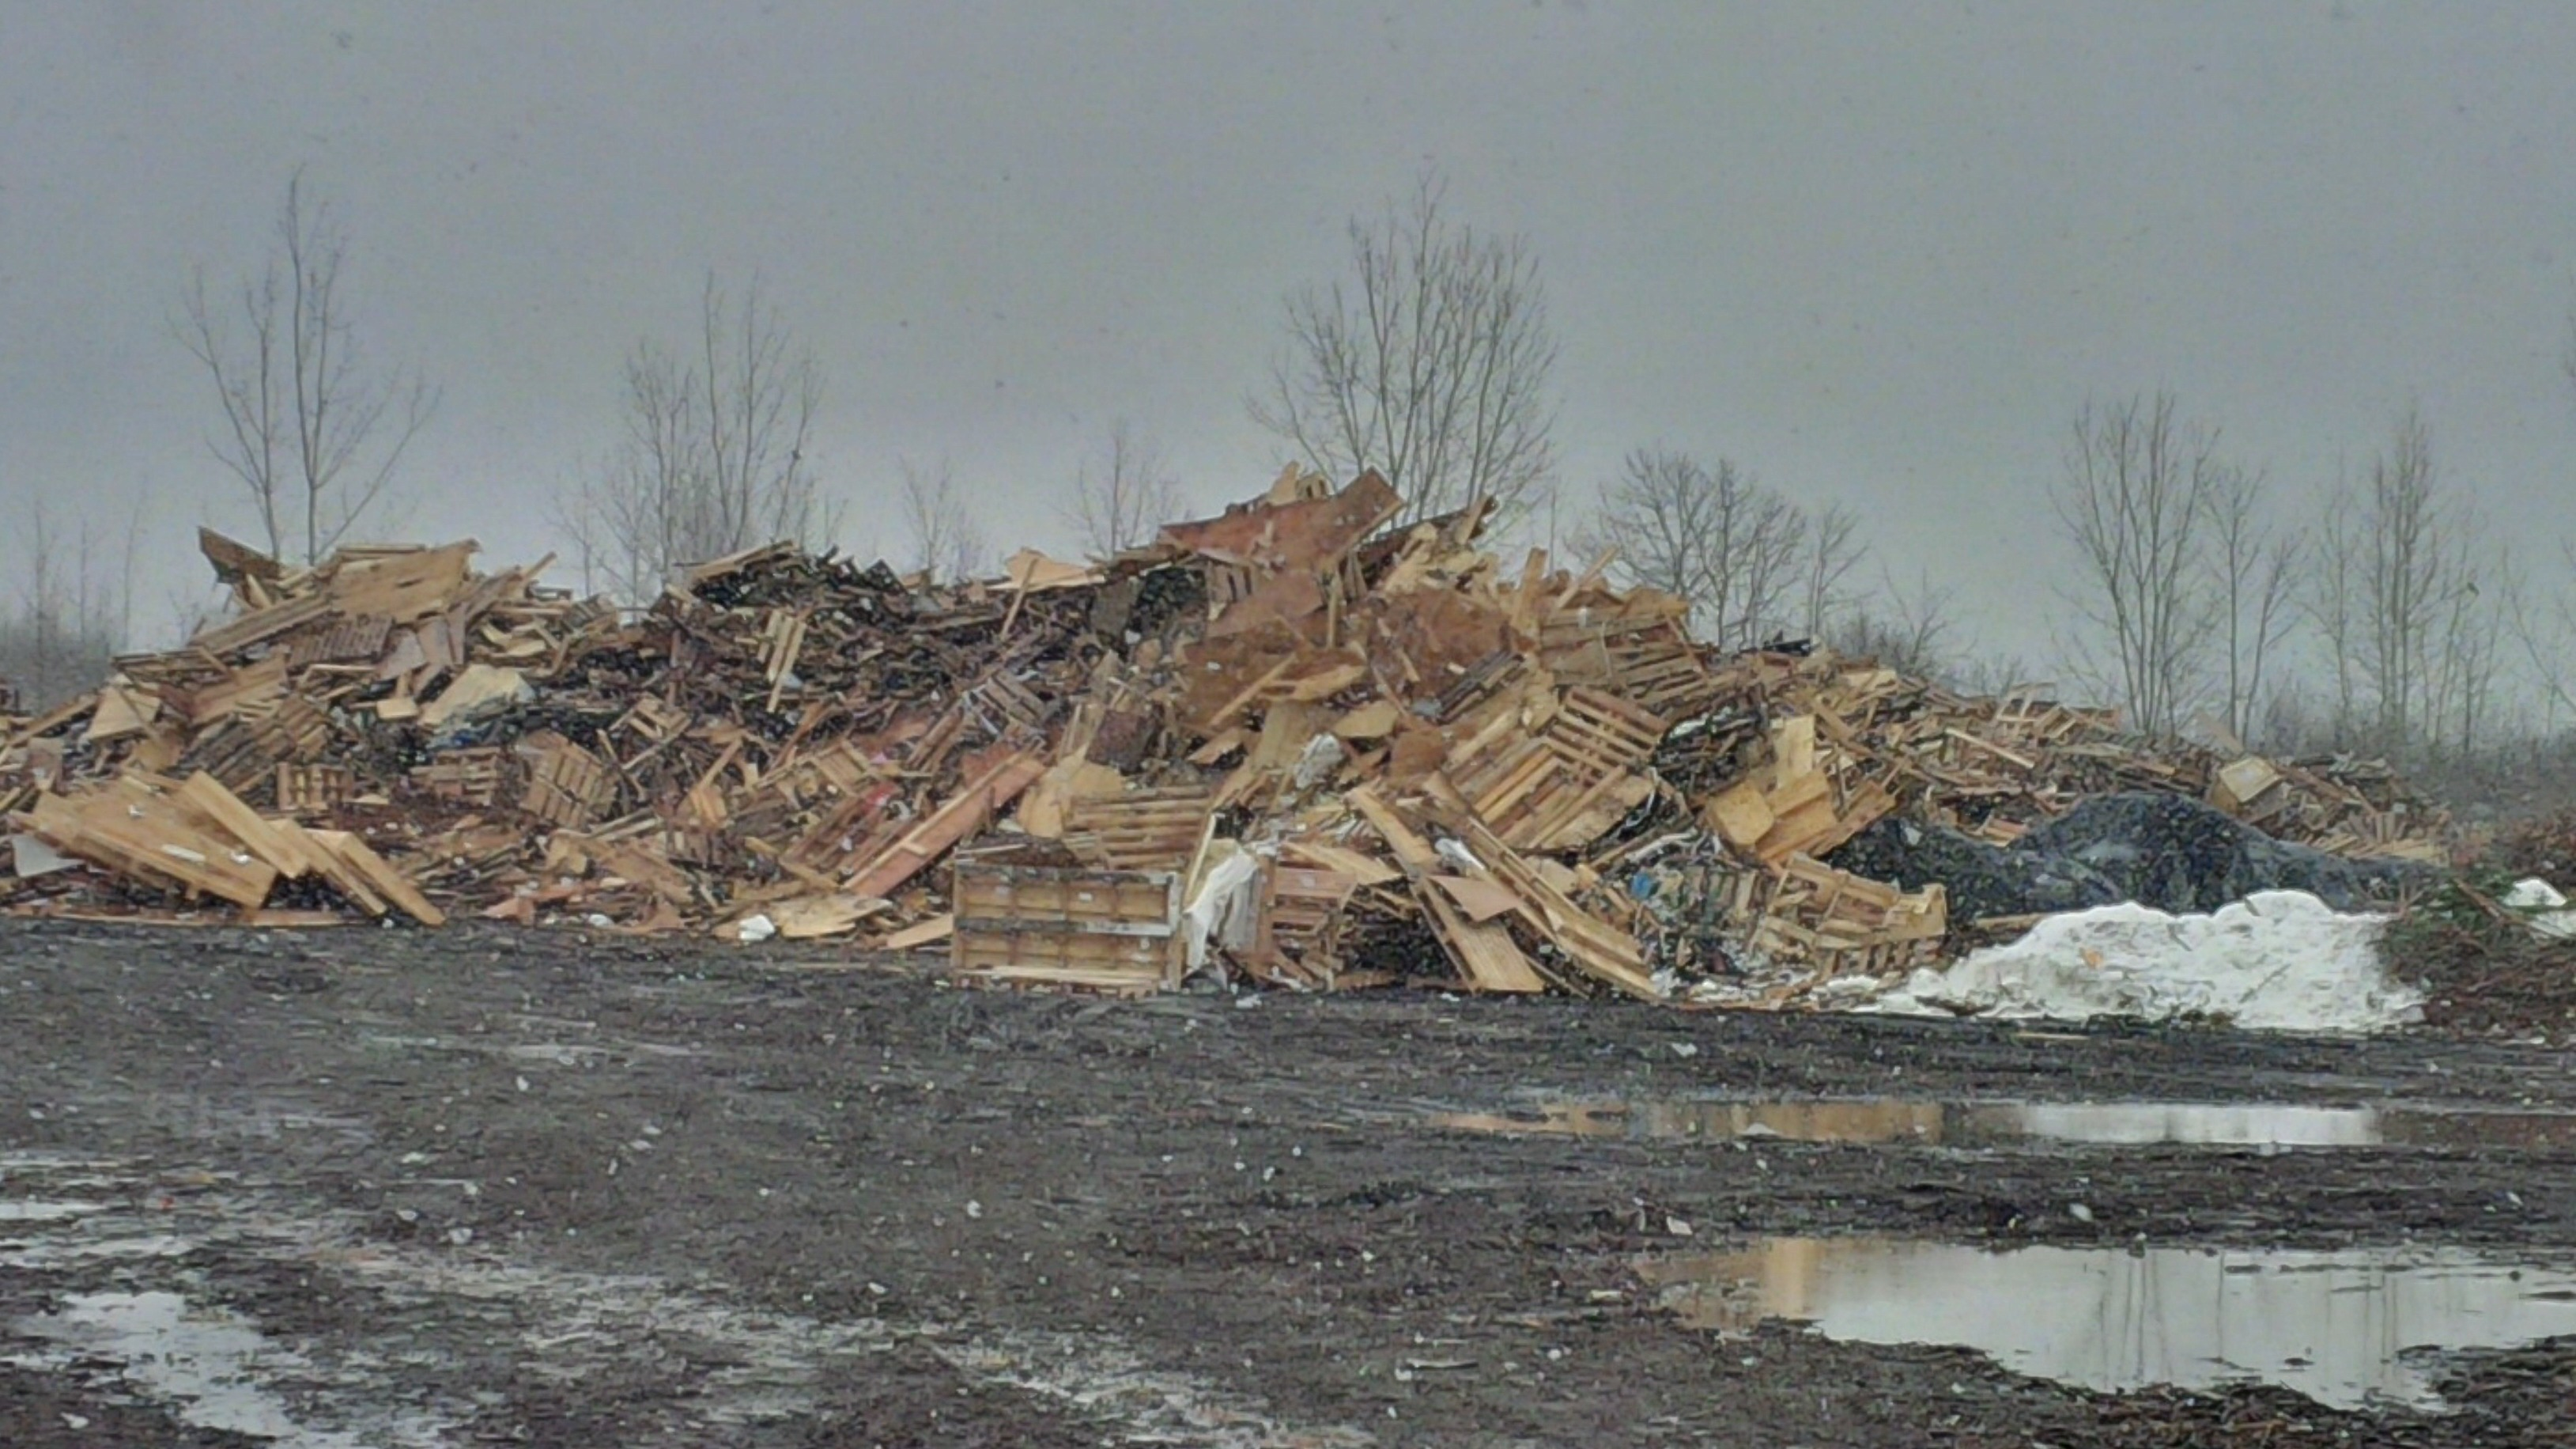 Pile of wood recycling at Cornwall landfill